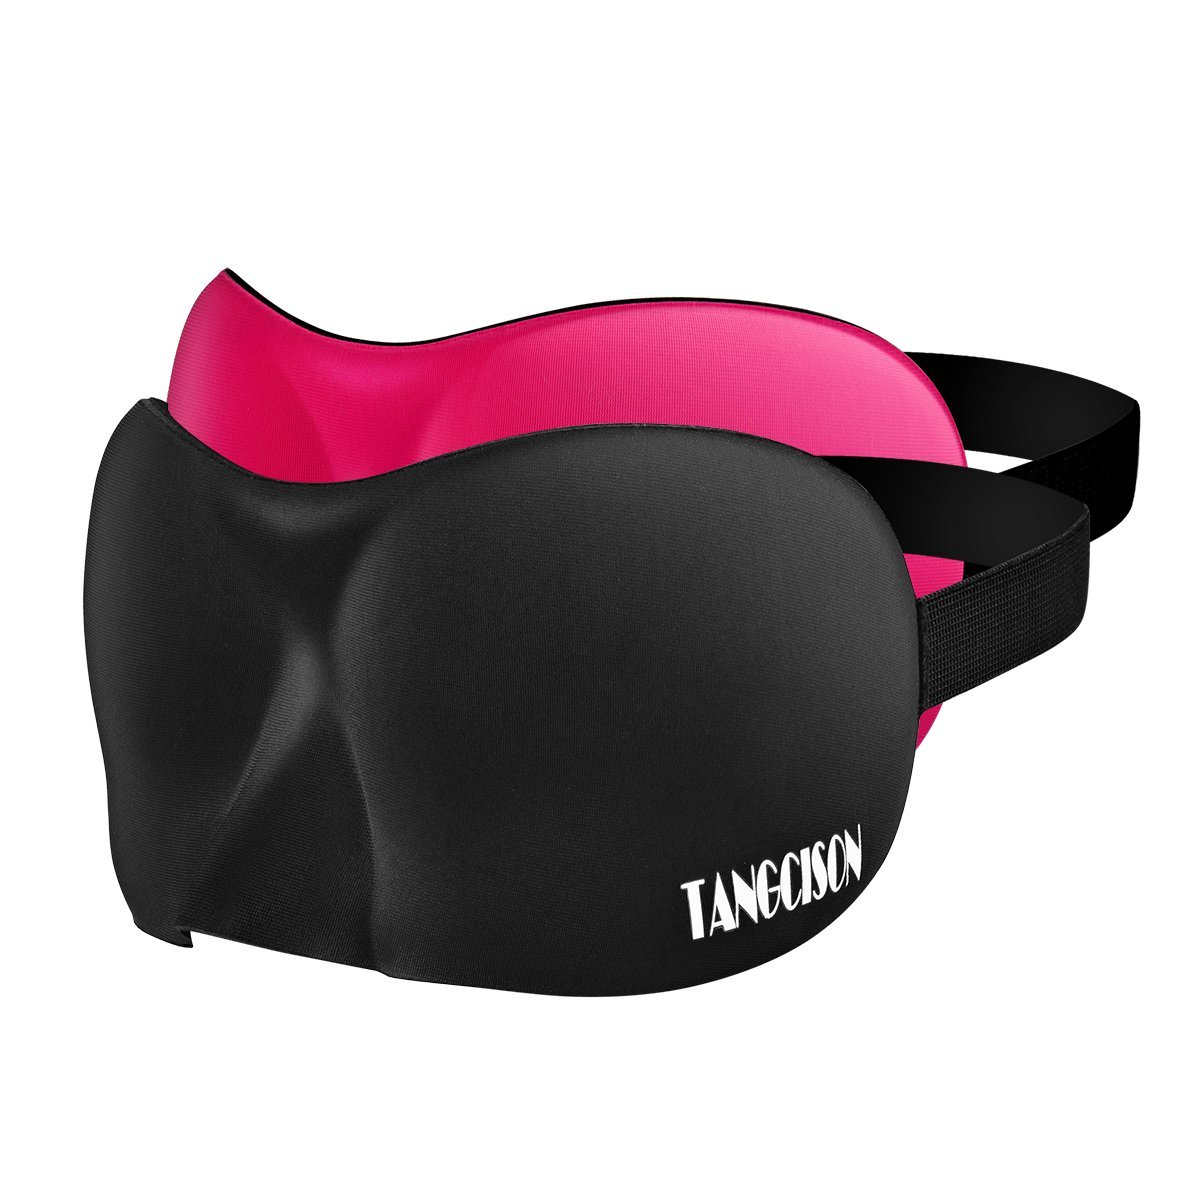 TANGCISON Eye Mask Sleep Mask, 2 Pack 3D Eye Mask for Sleeping, Bamboo and Cotton Material Eyeshade, Sleep Eye Mask with Adjustable Strap for Women and Men (Black and Rose Red) 4332436778